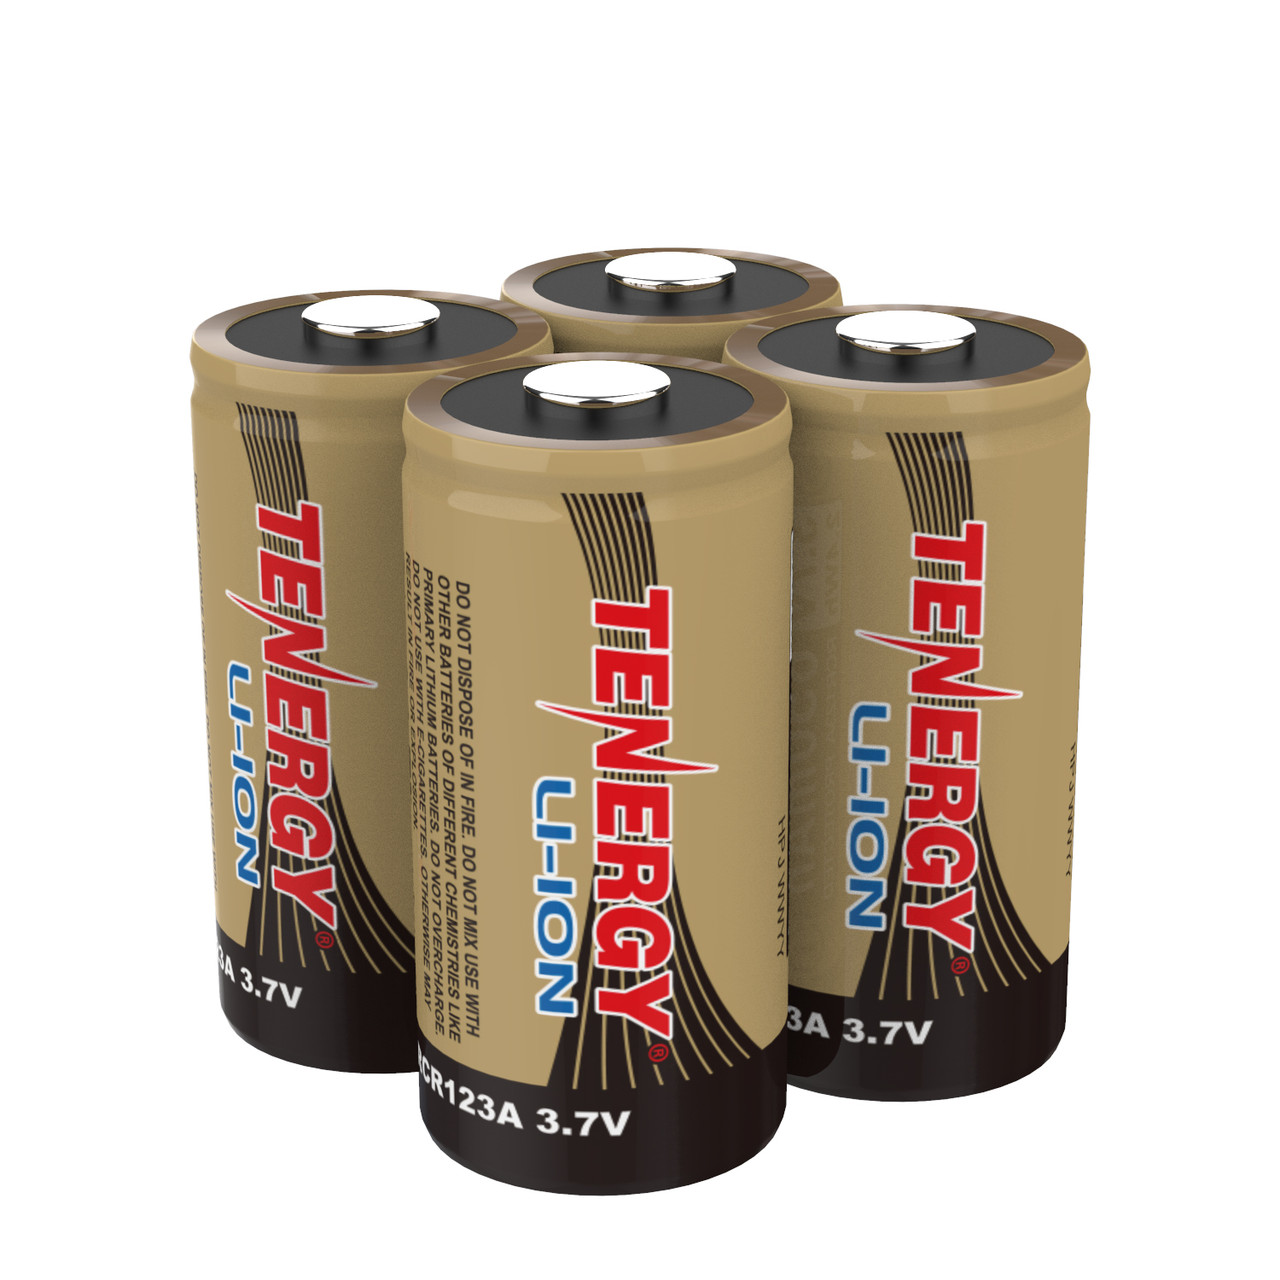 Rechargeable Batteries (4-Pack) Arlo Certified Li-ion 3.7V 650mAh Battery for Arlo Smart Security Camera, UL & UN Certified